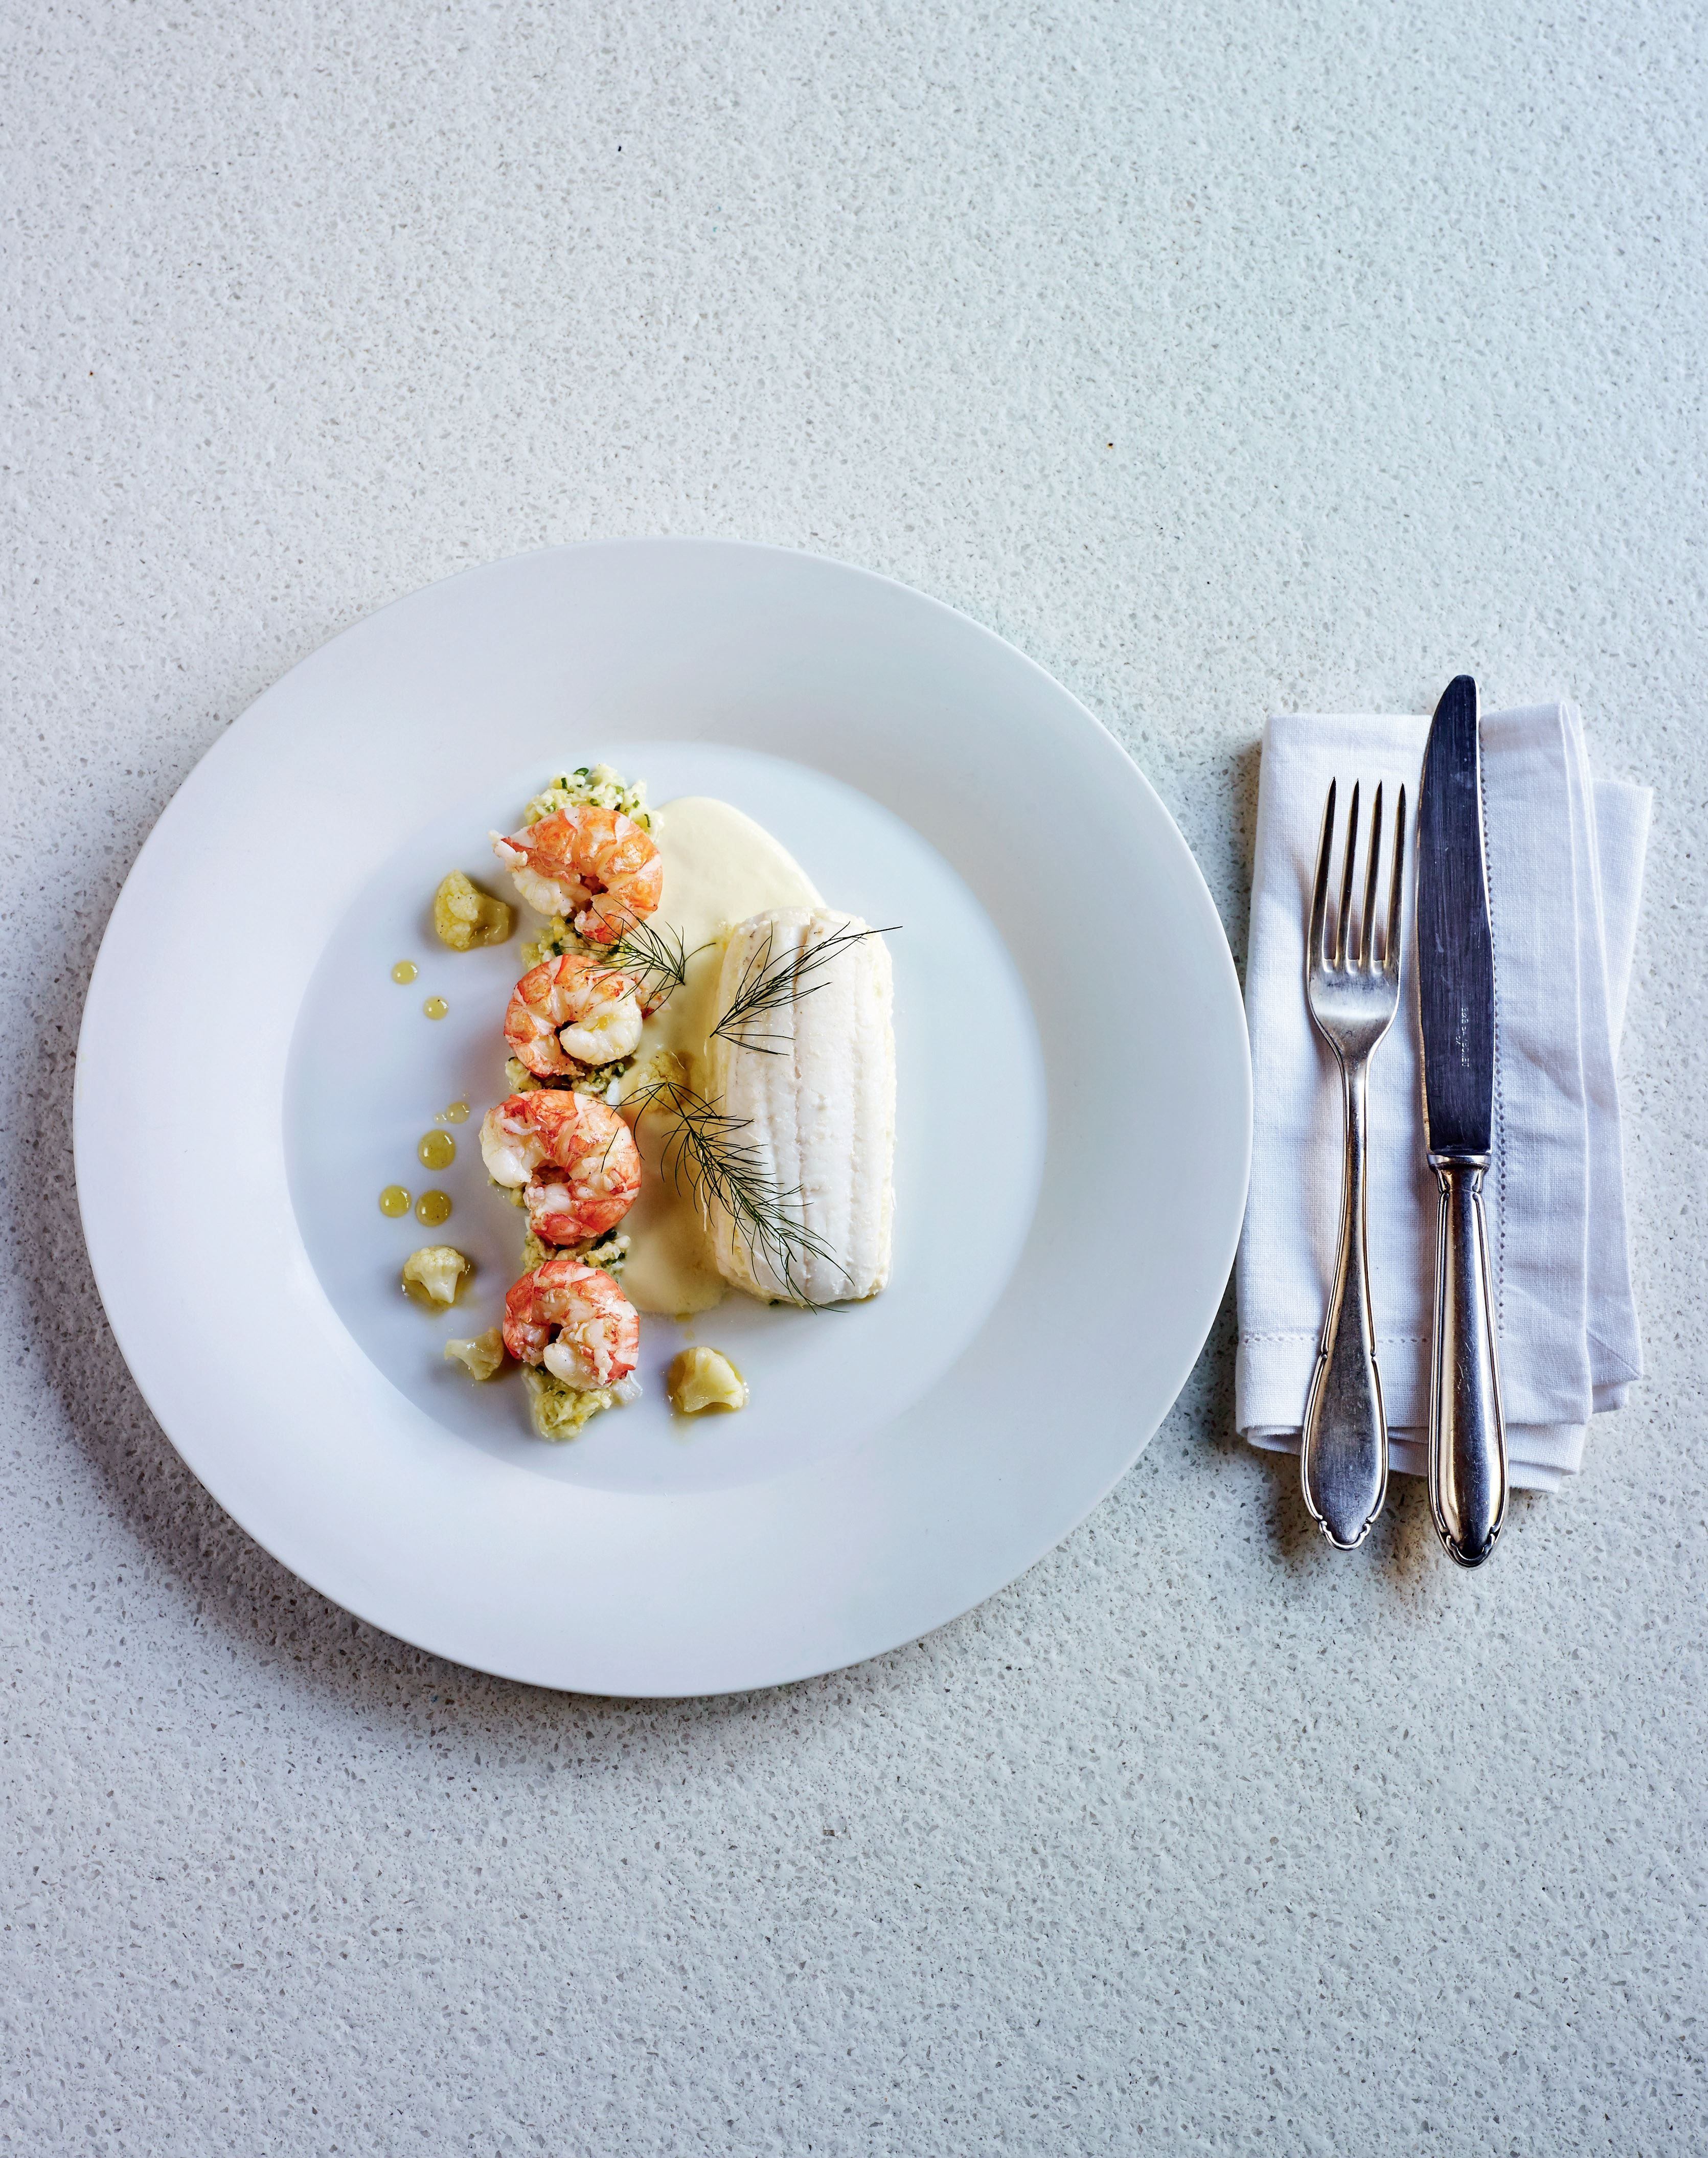 Layered sole with langoustines and cauliflower recipe from more home